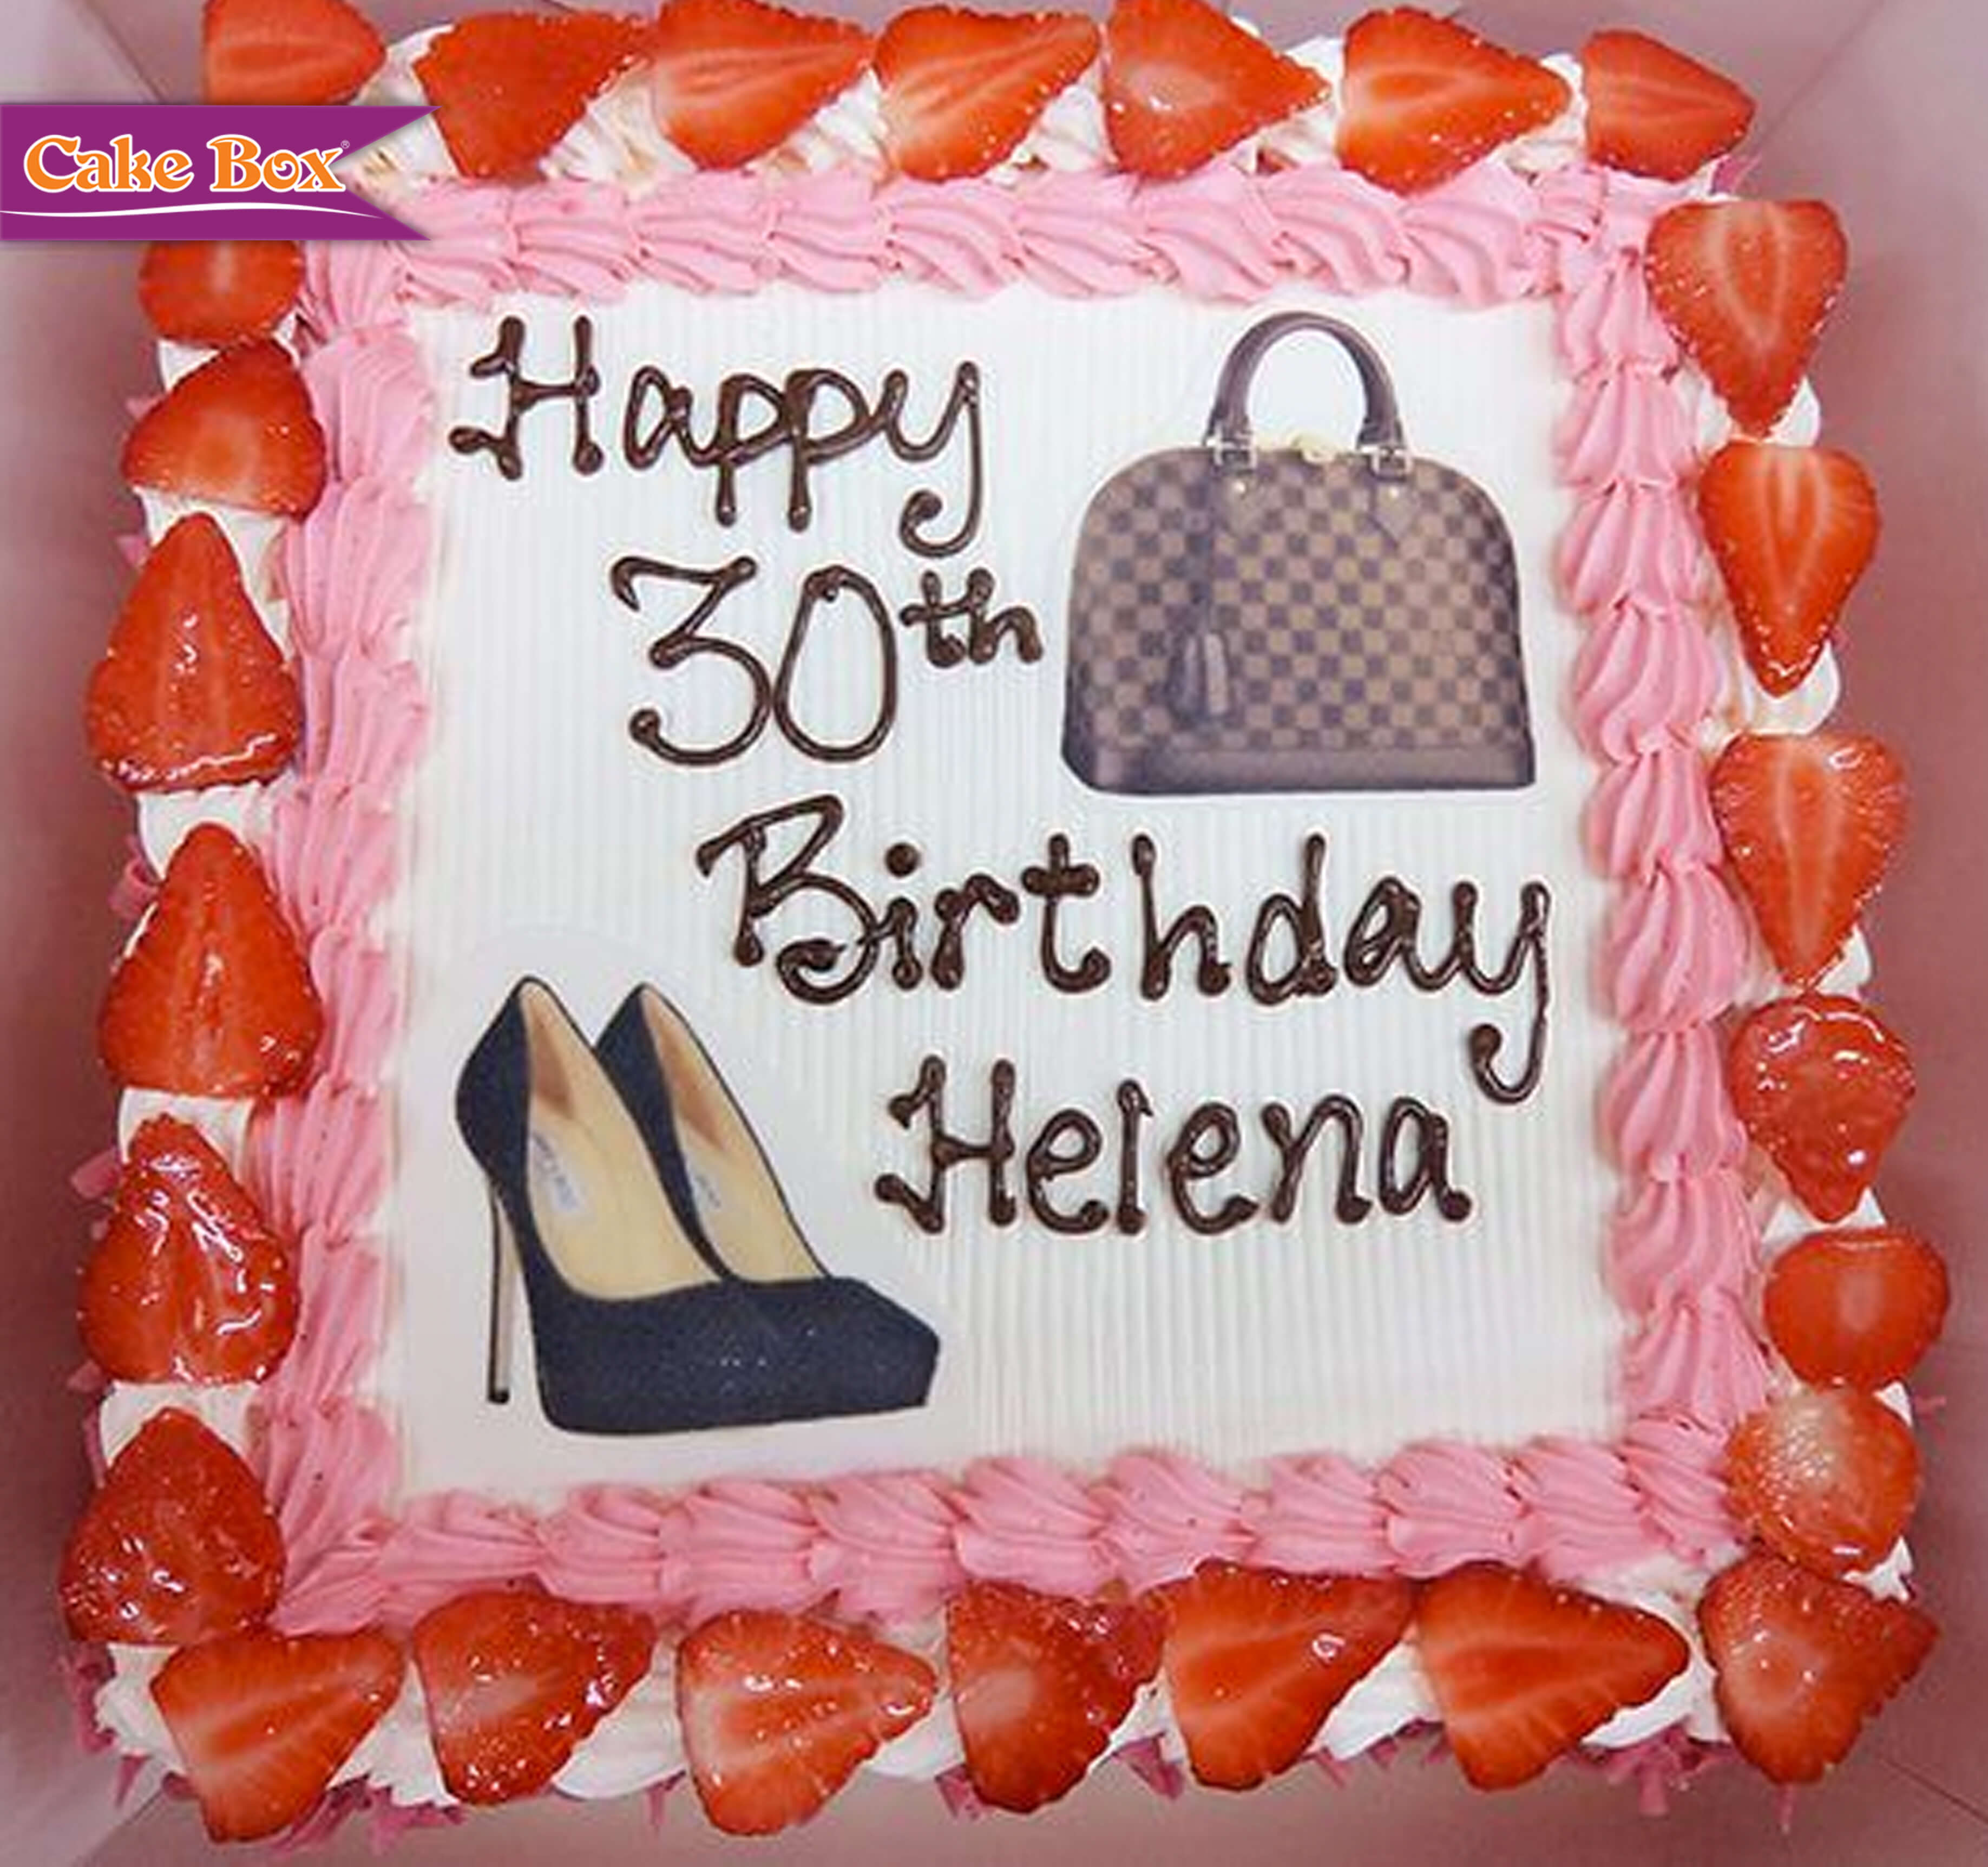 Astounding Birthday Cake Personalised Birthday Cakes Celebration Cakes Funny Birthday Cards Online Alyptdamsfinfo